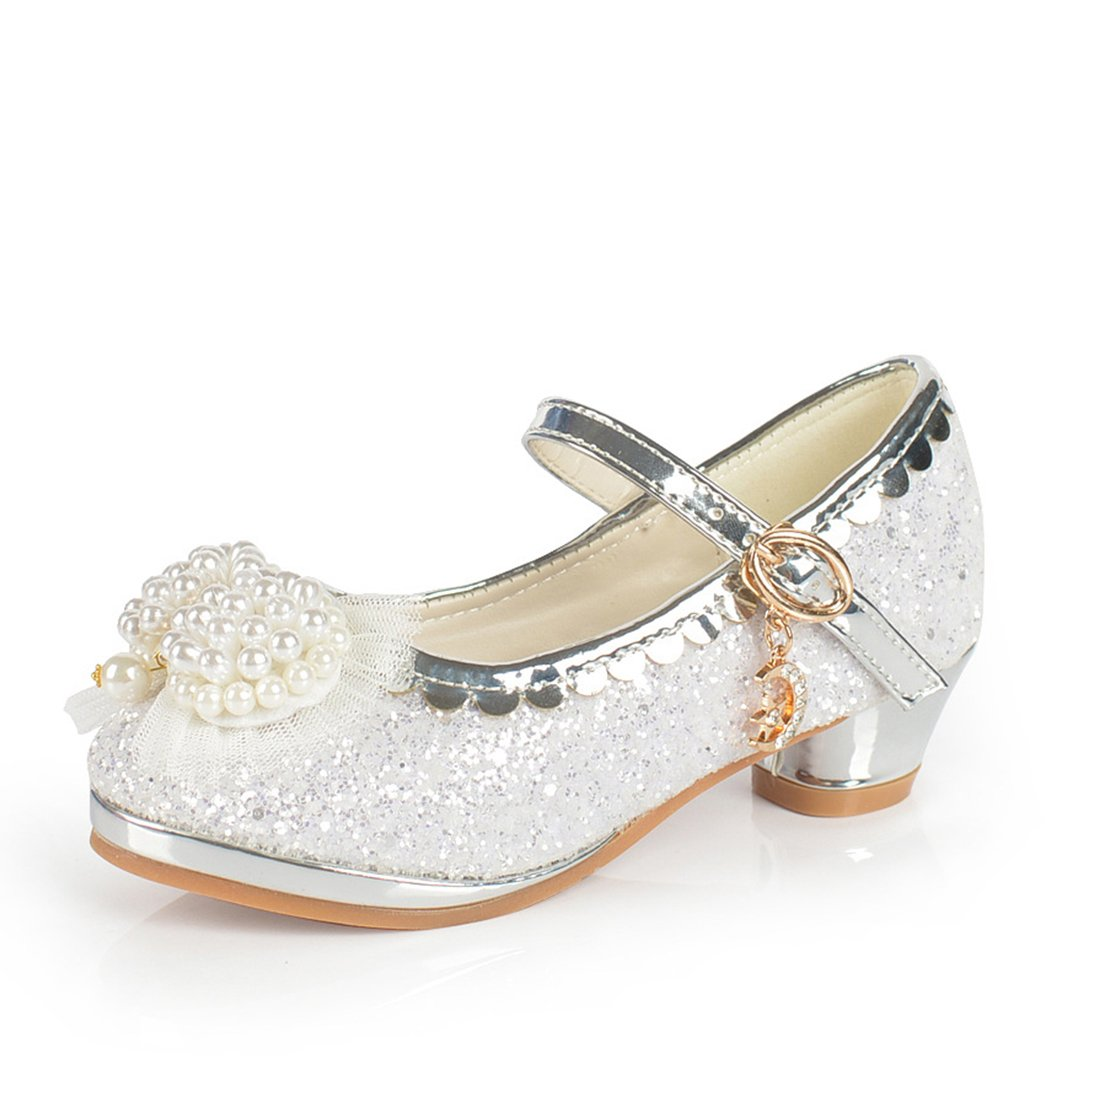 Kids Girls Princess Shoes Bowknot Faux Pearl Mary Jane Wedding Glitter Dance Party Shoes High Heels White Size 11.5 M